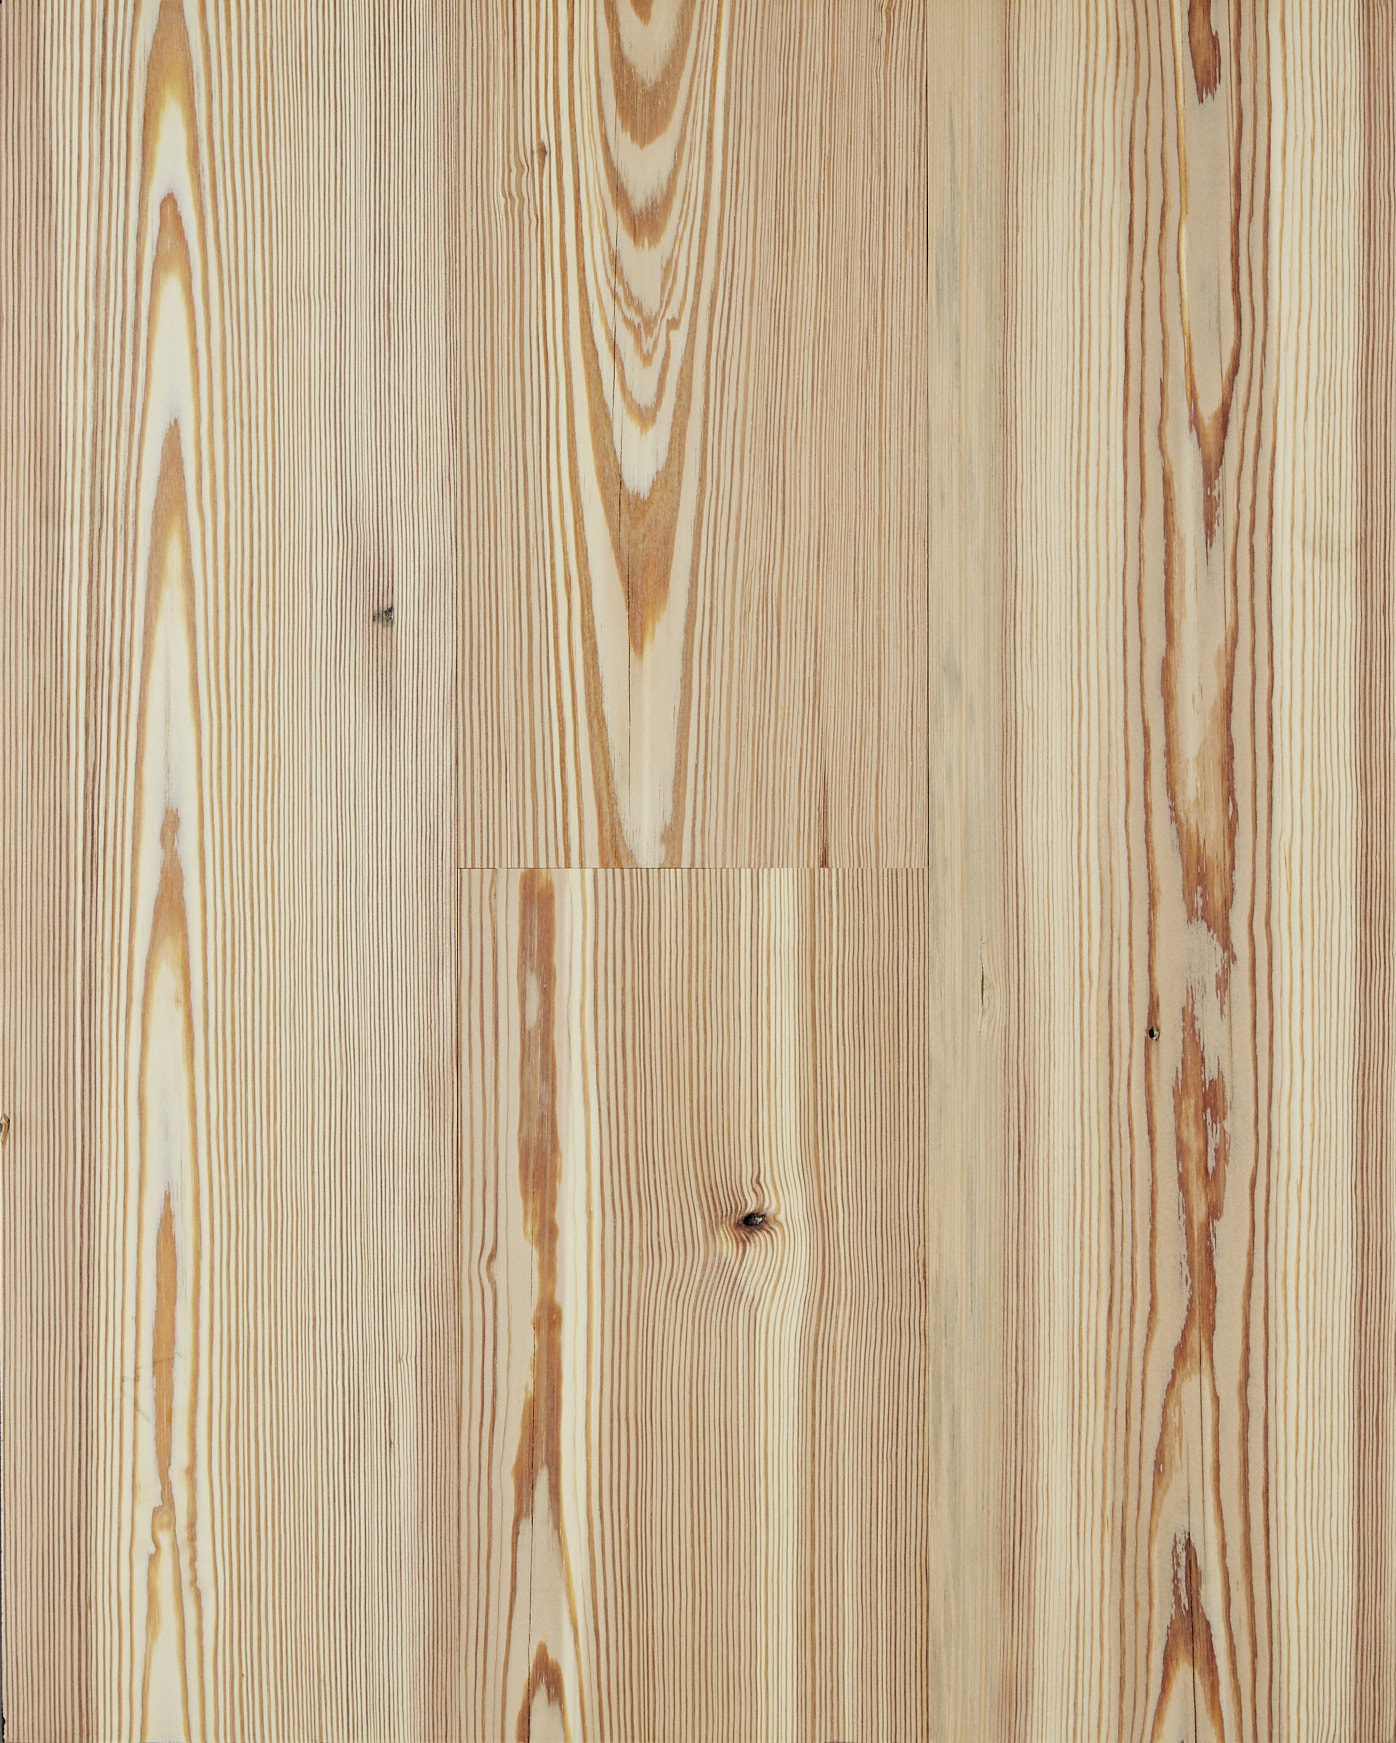 Reclaimed Heart Pine-New Face.jpg